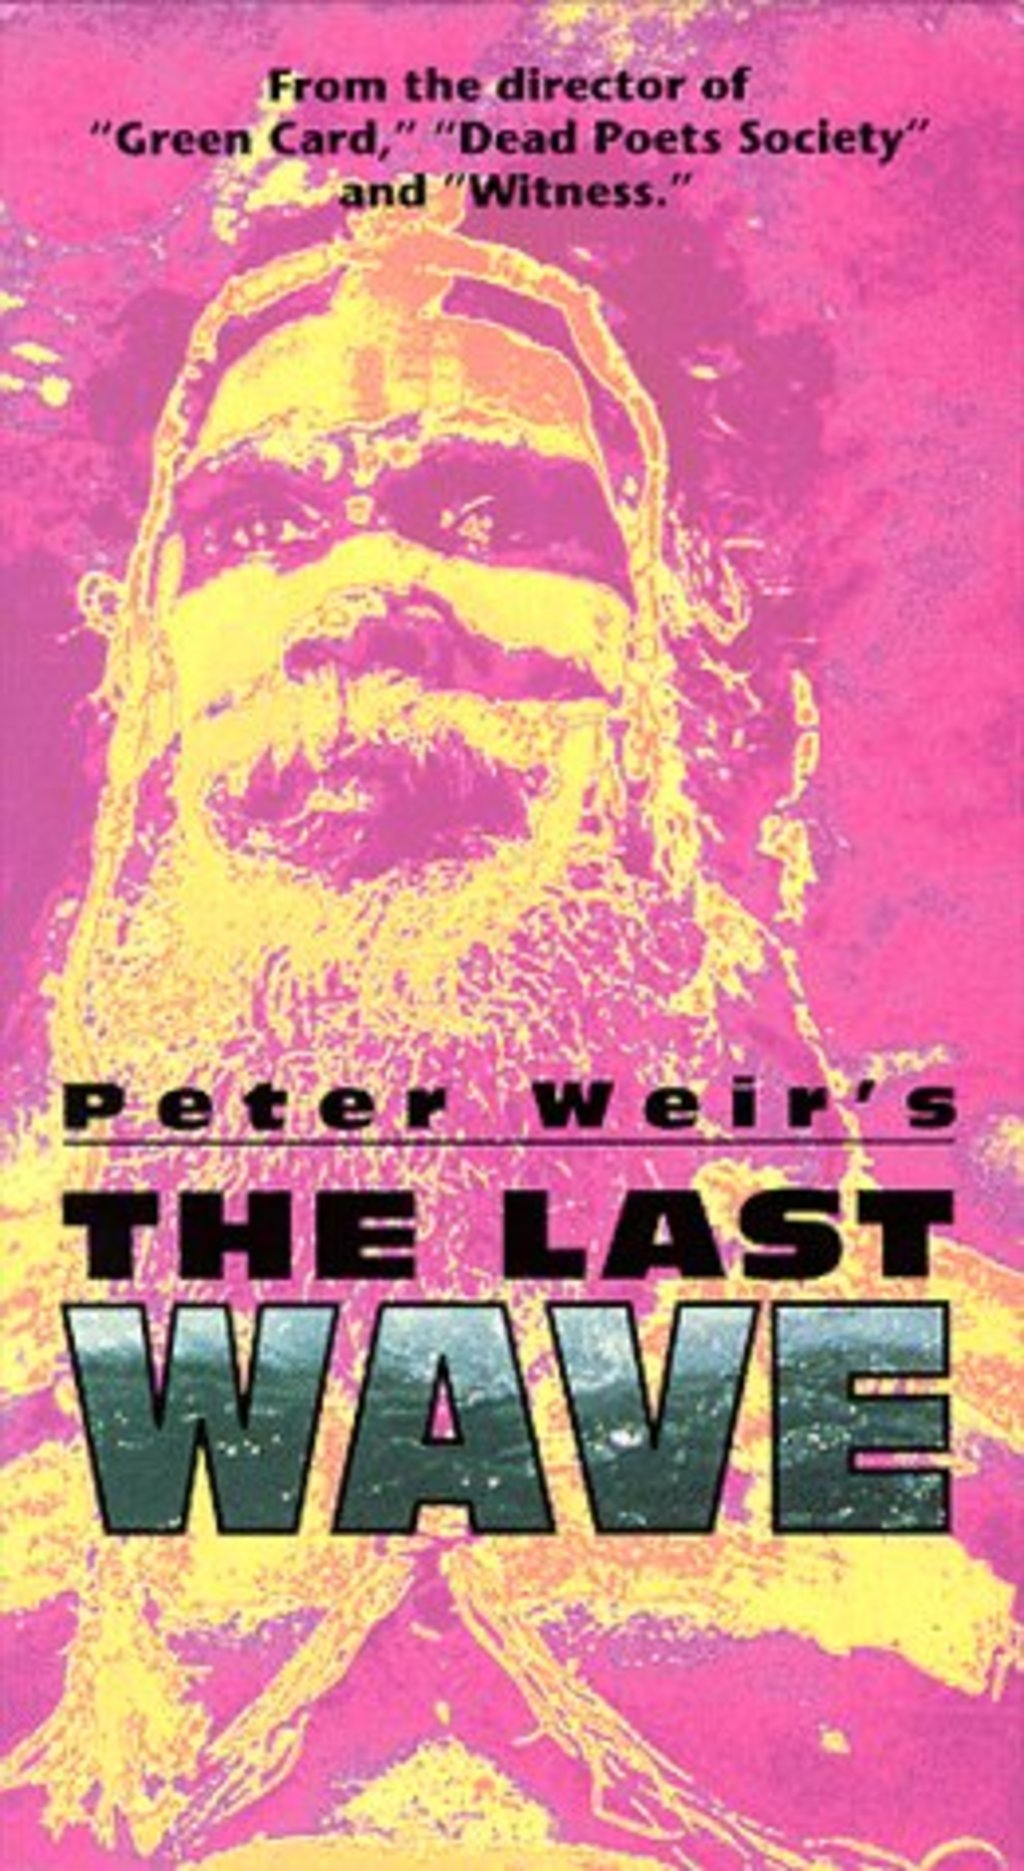 an analysis of the last wave directed by peter weir The last wave is a movie co-written and directed by peter weir in 1977 in click here to see the rest of this review.